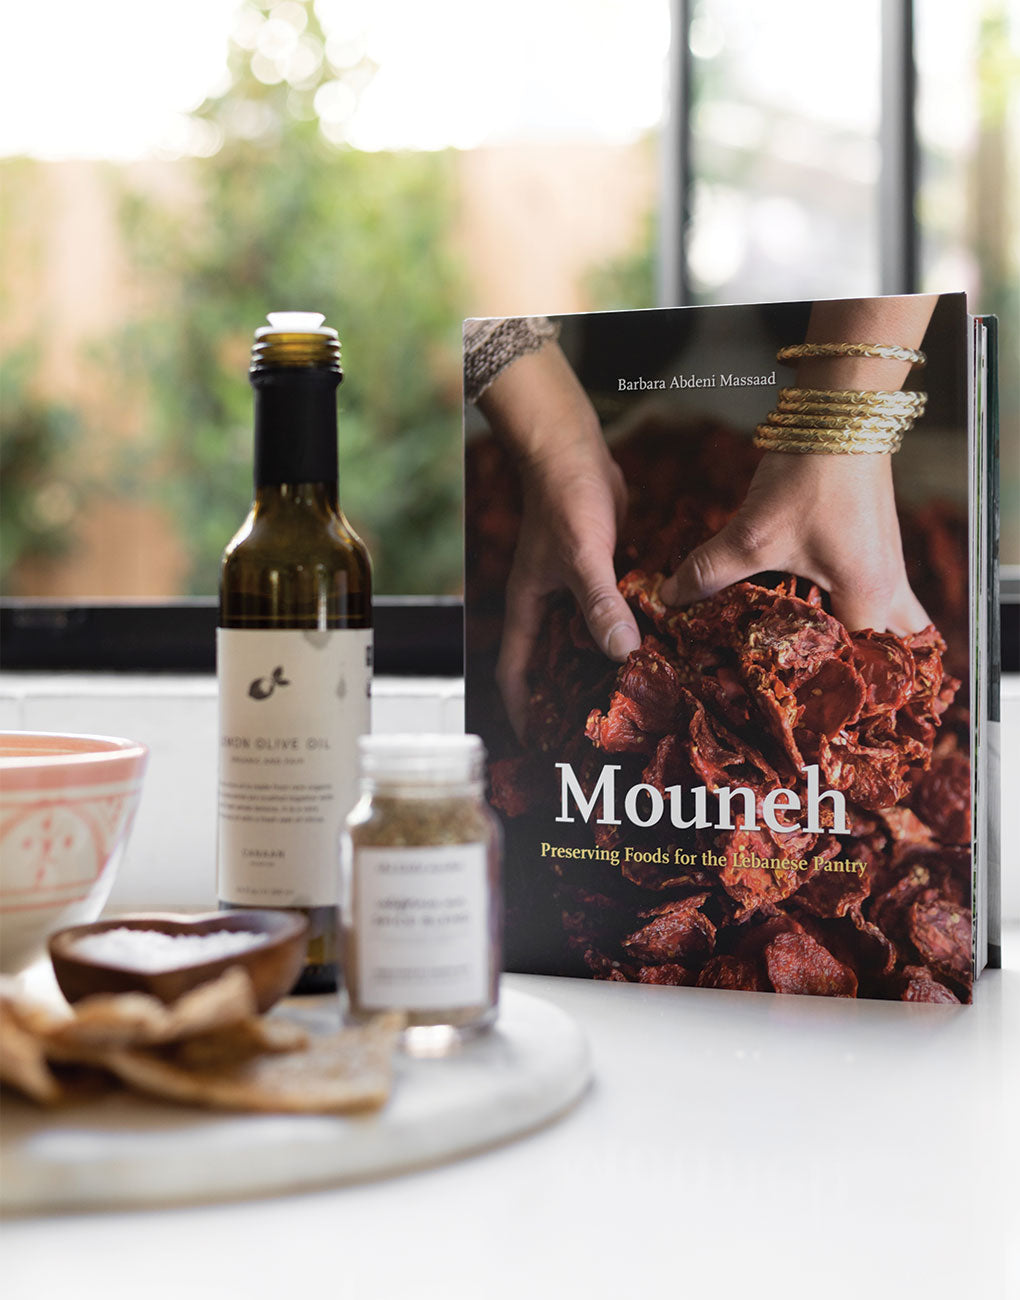 Mouneh Cookbook | The Little Market